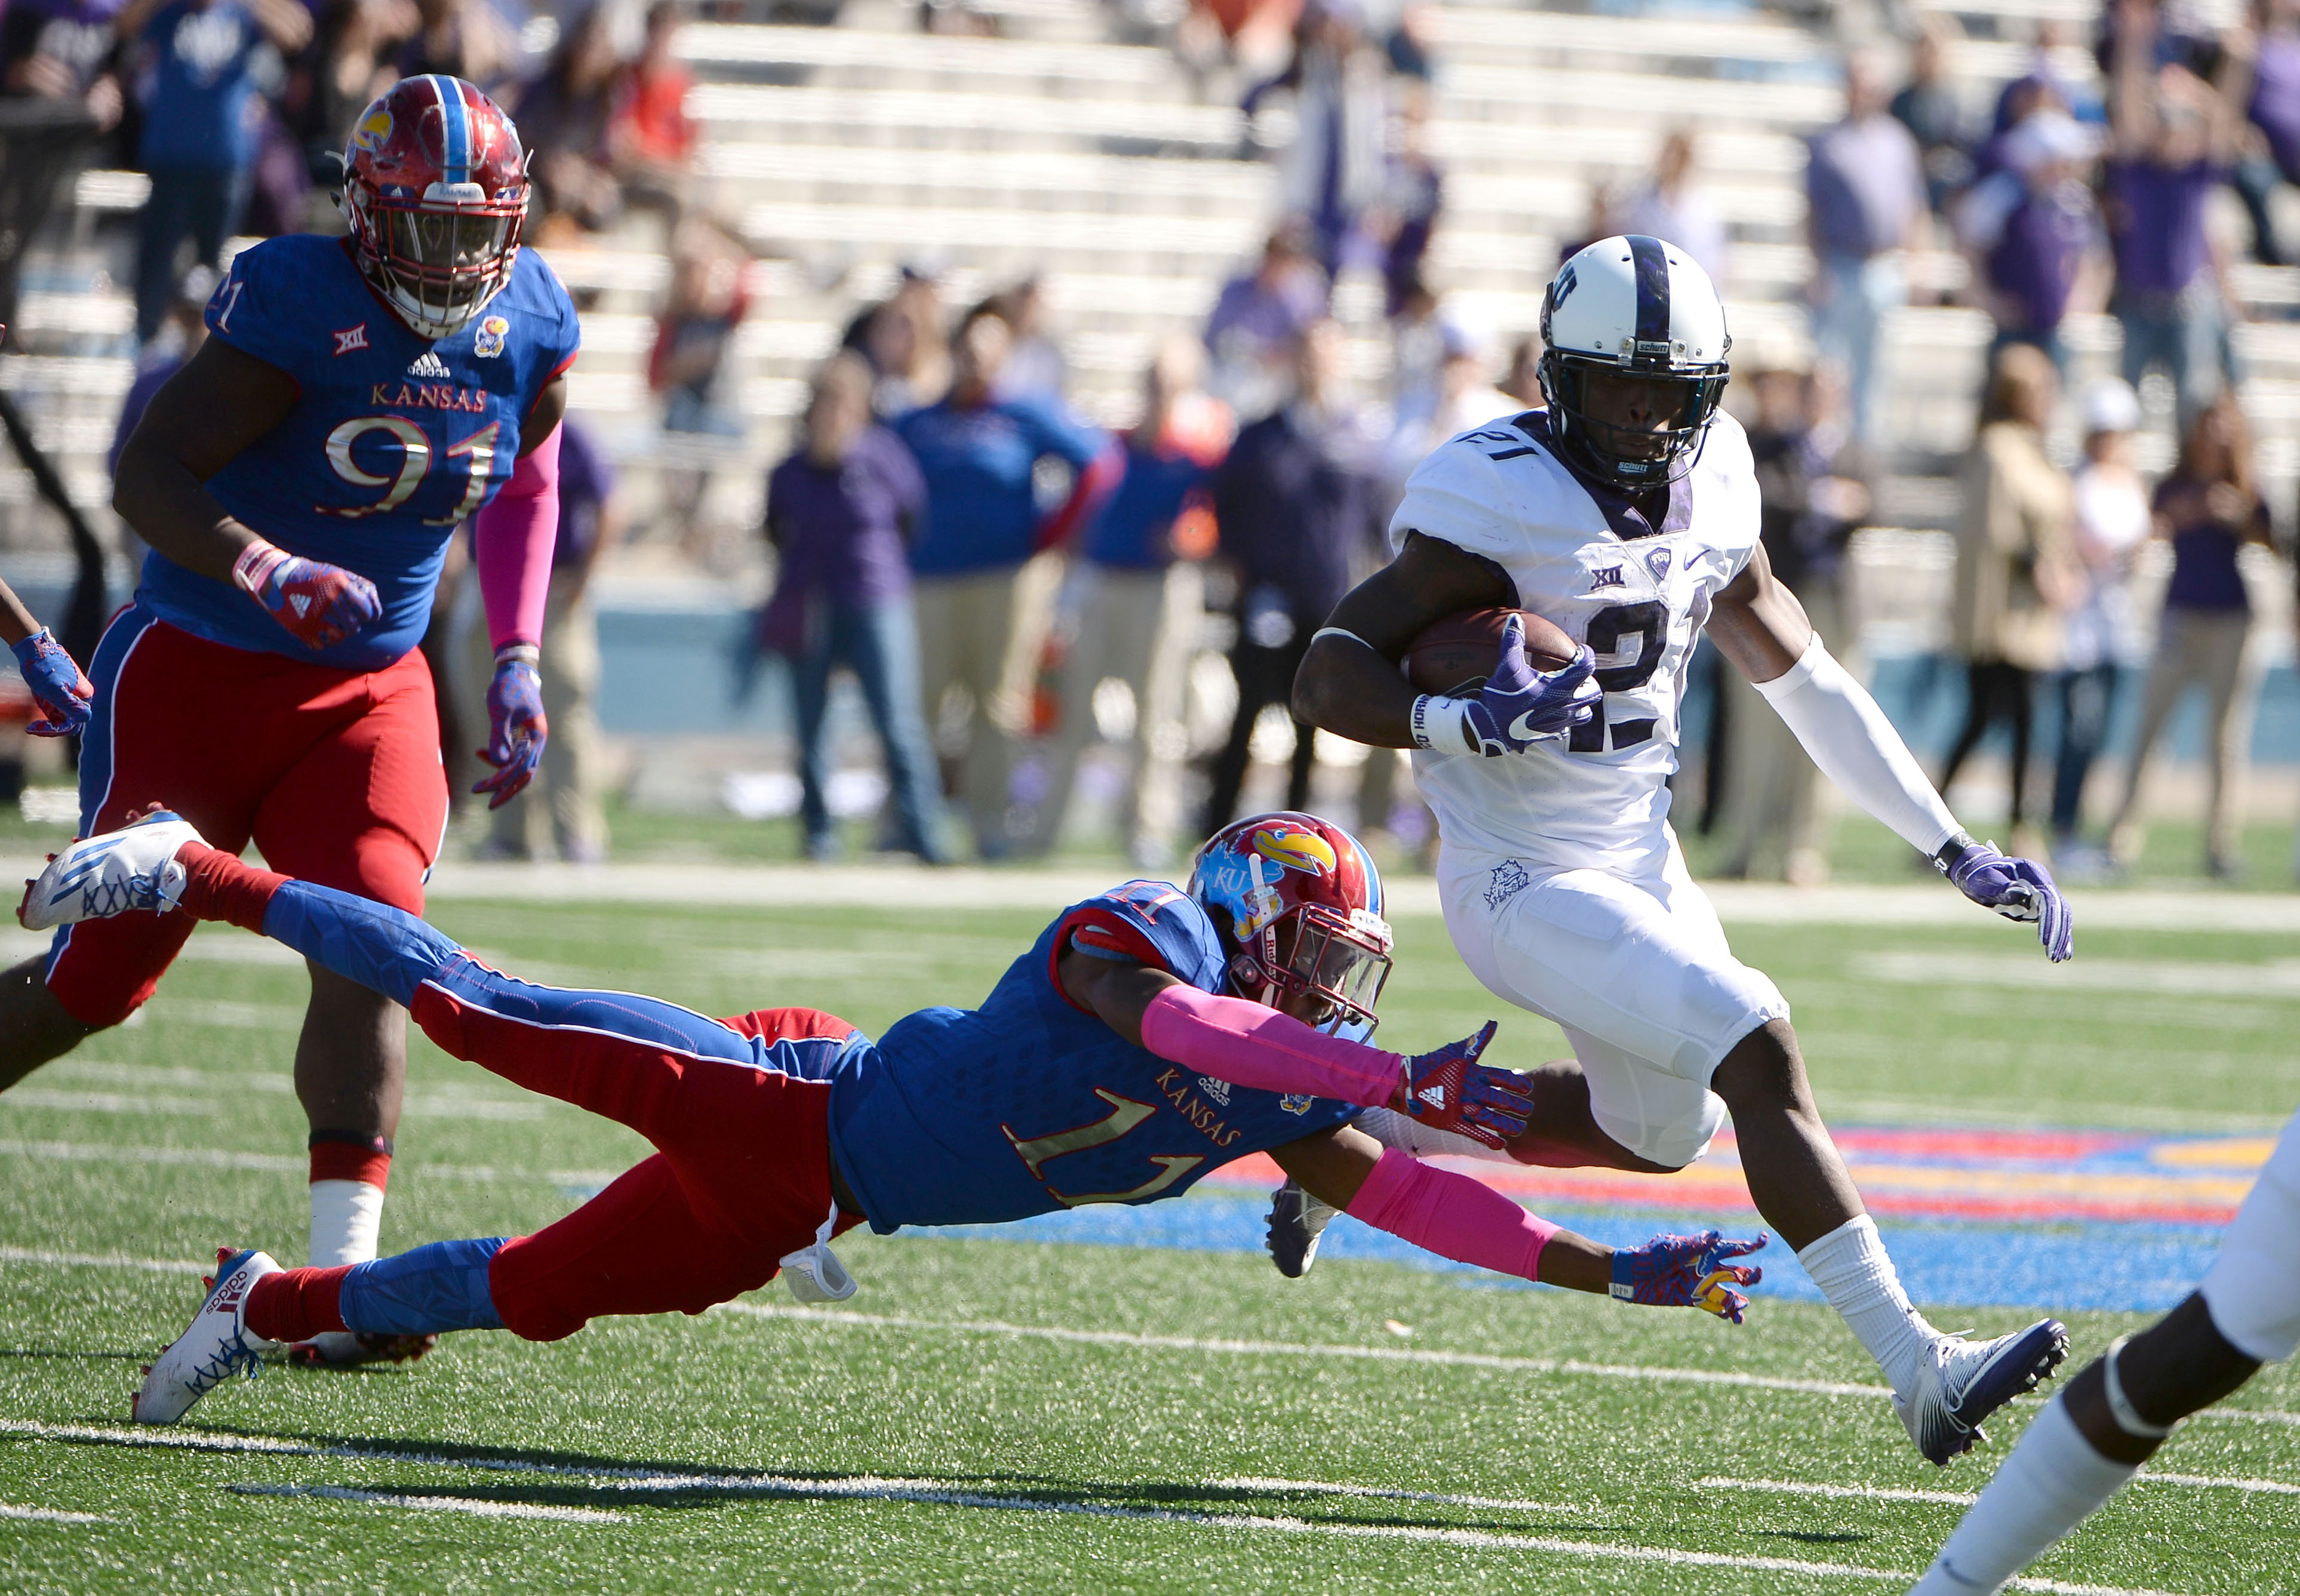 A win over the Frogs has always been just out of reach for KU